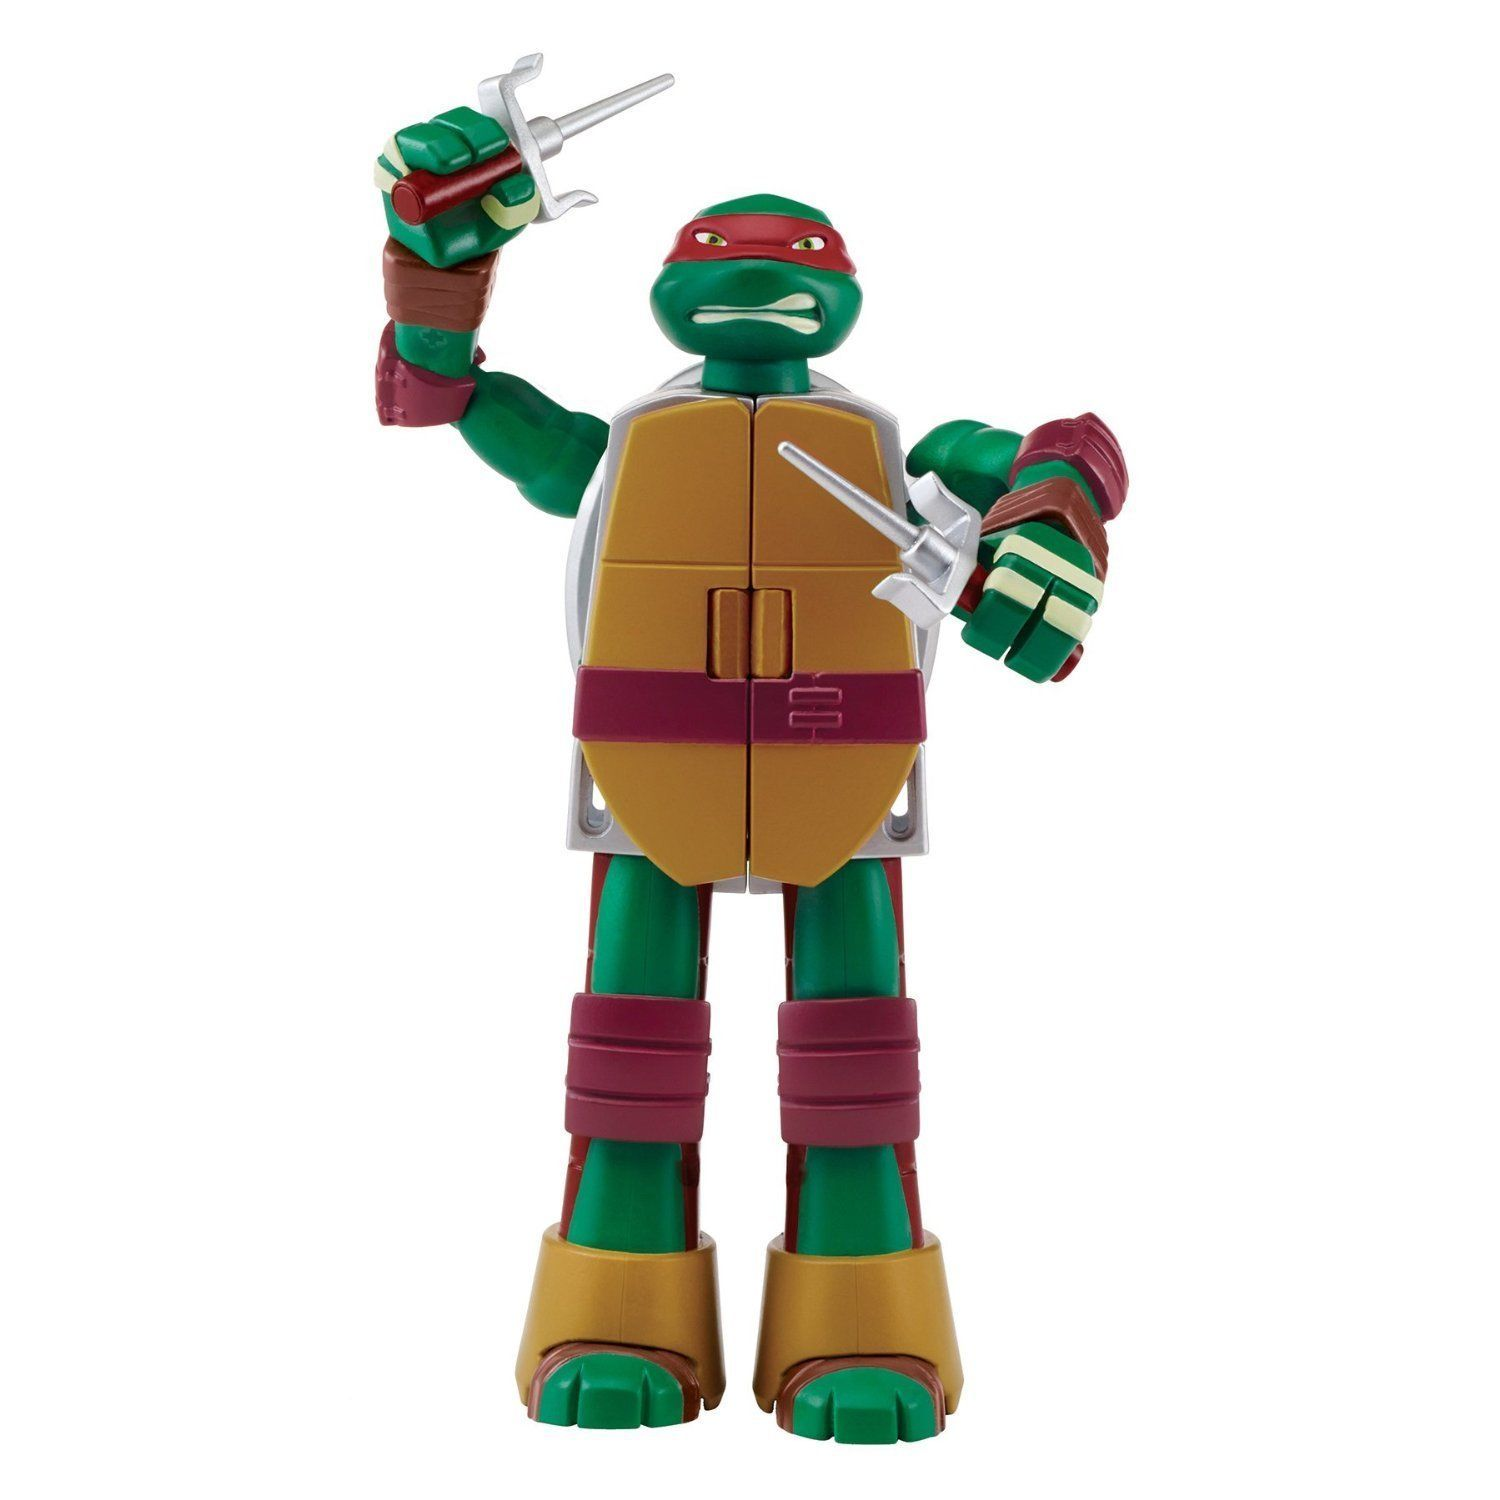 Ninja Turtles Raphael Weapon